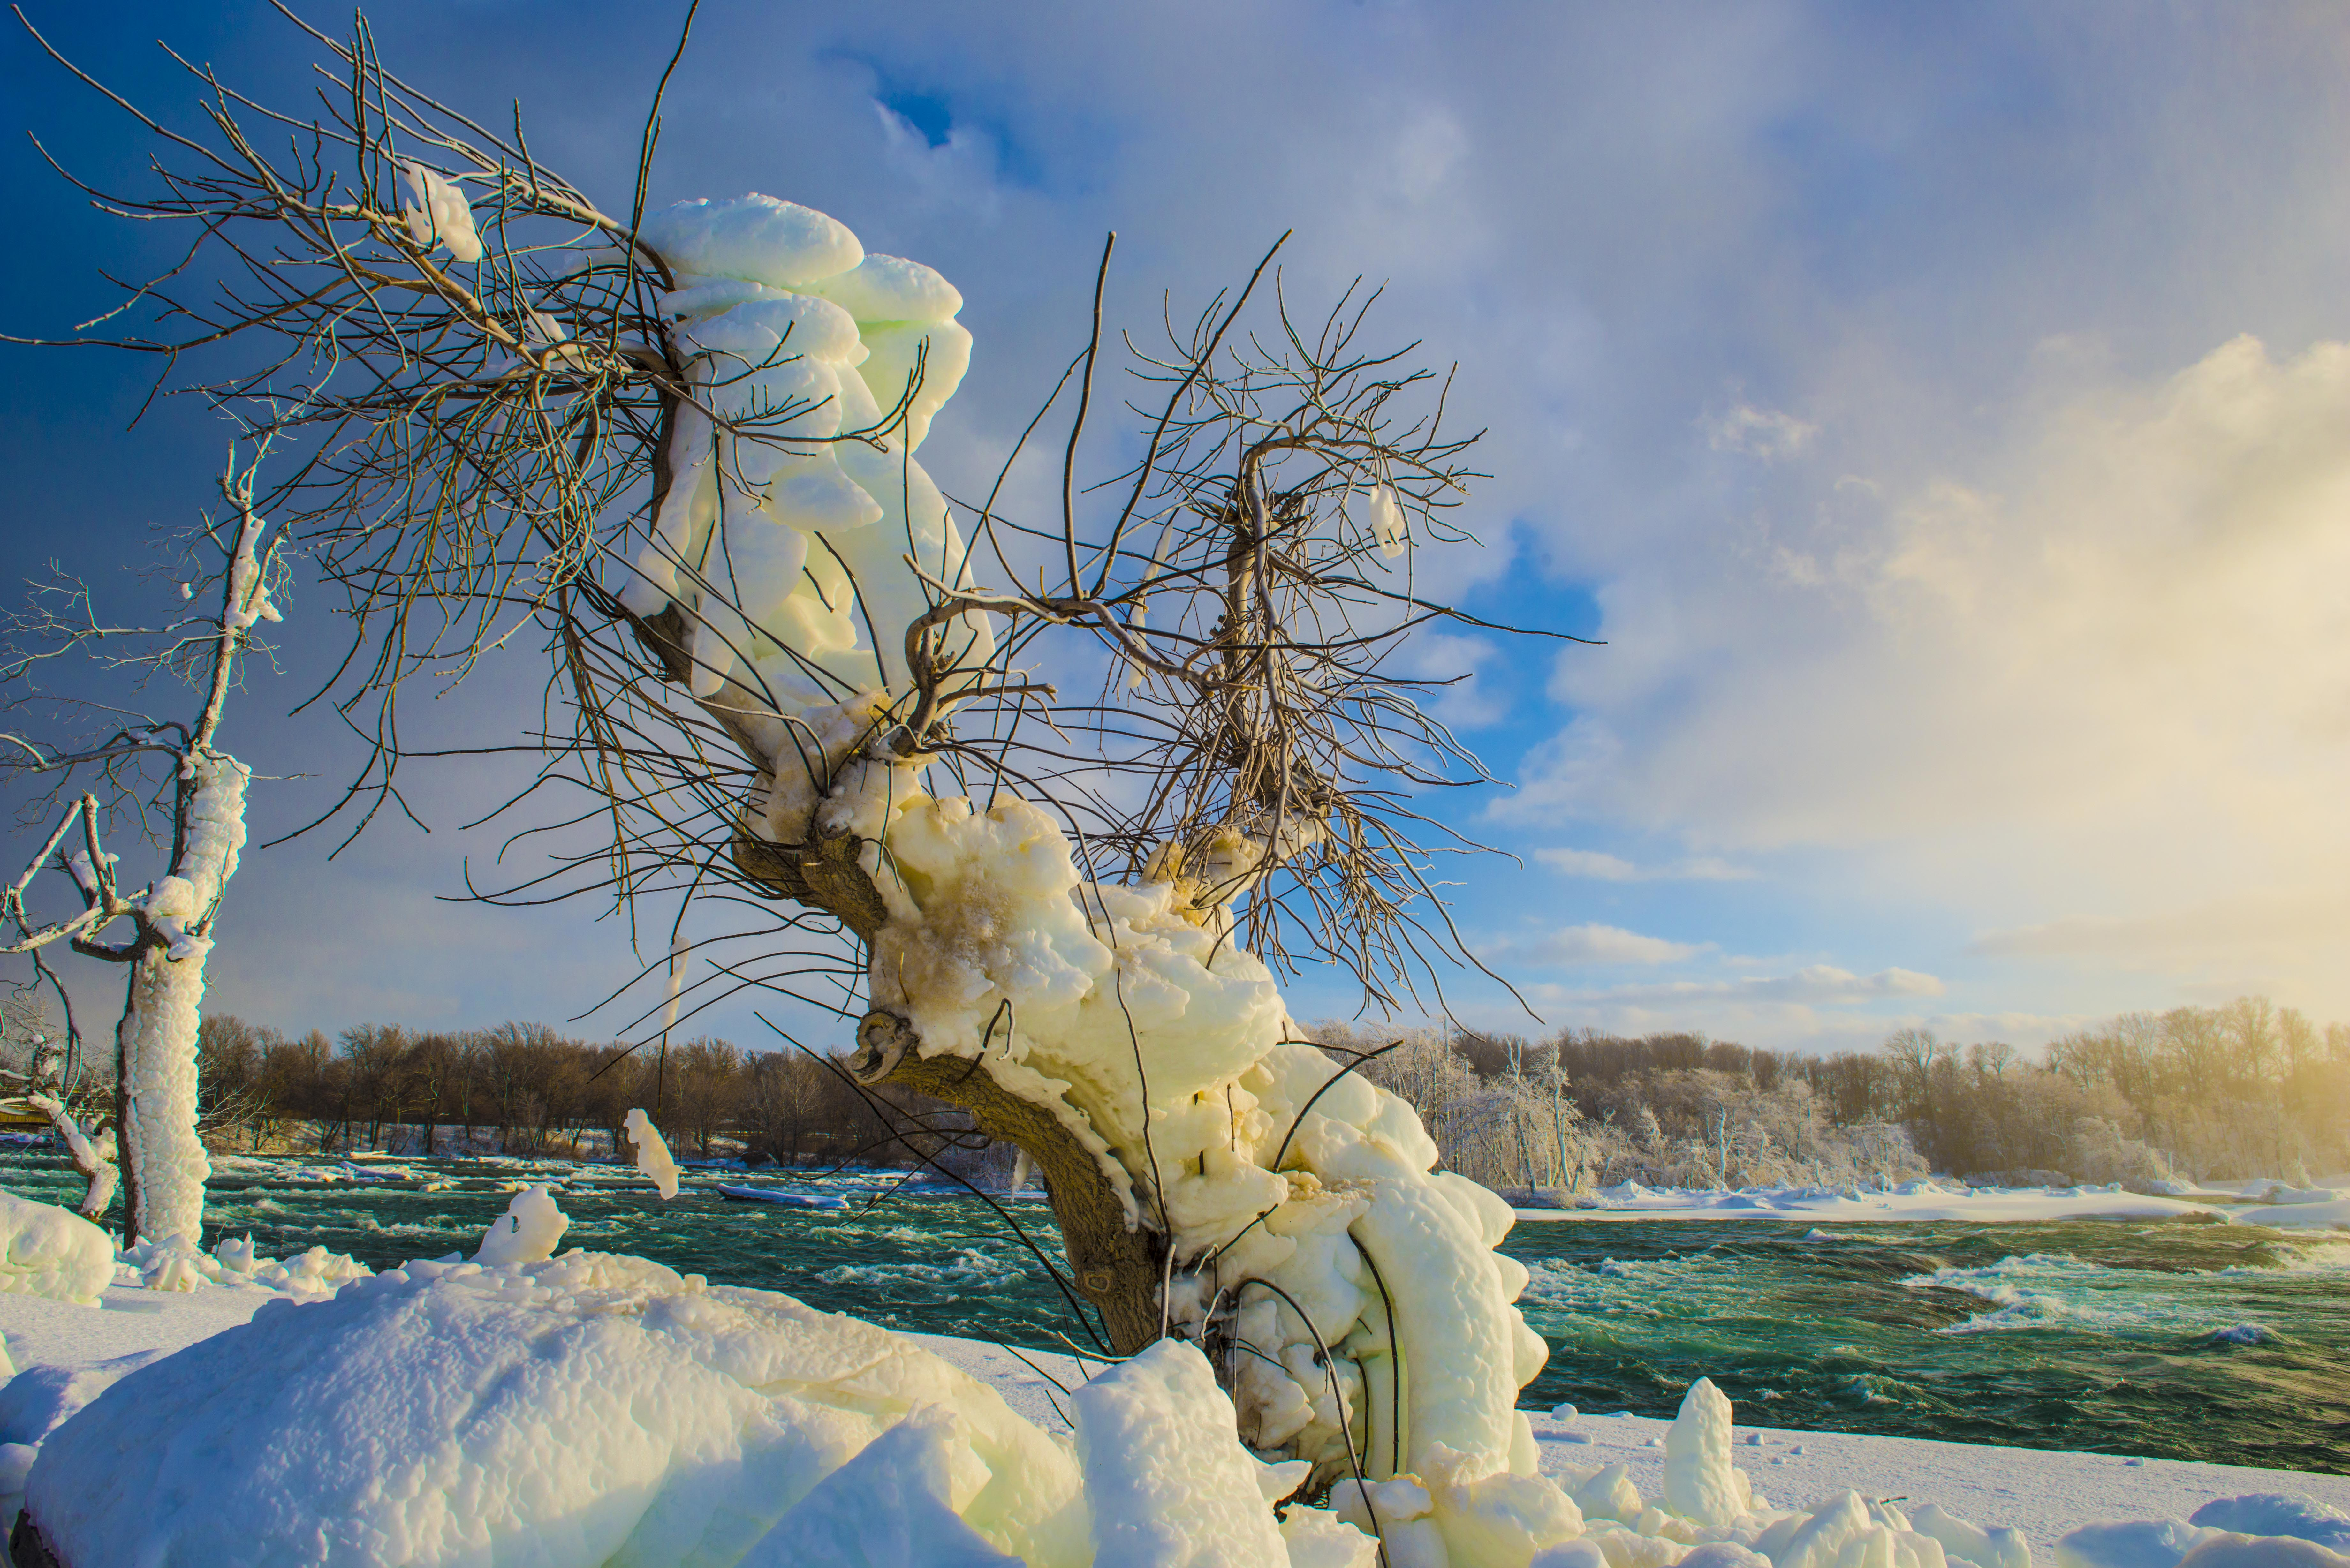 Niagara Falls in Winter Photographed by Tom Till